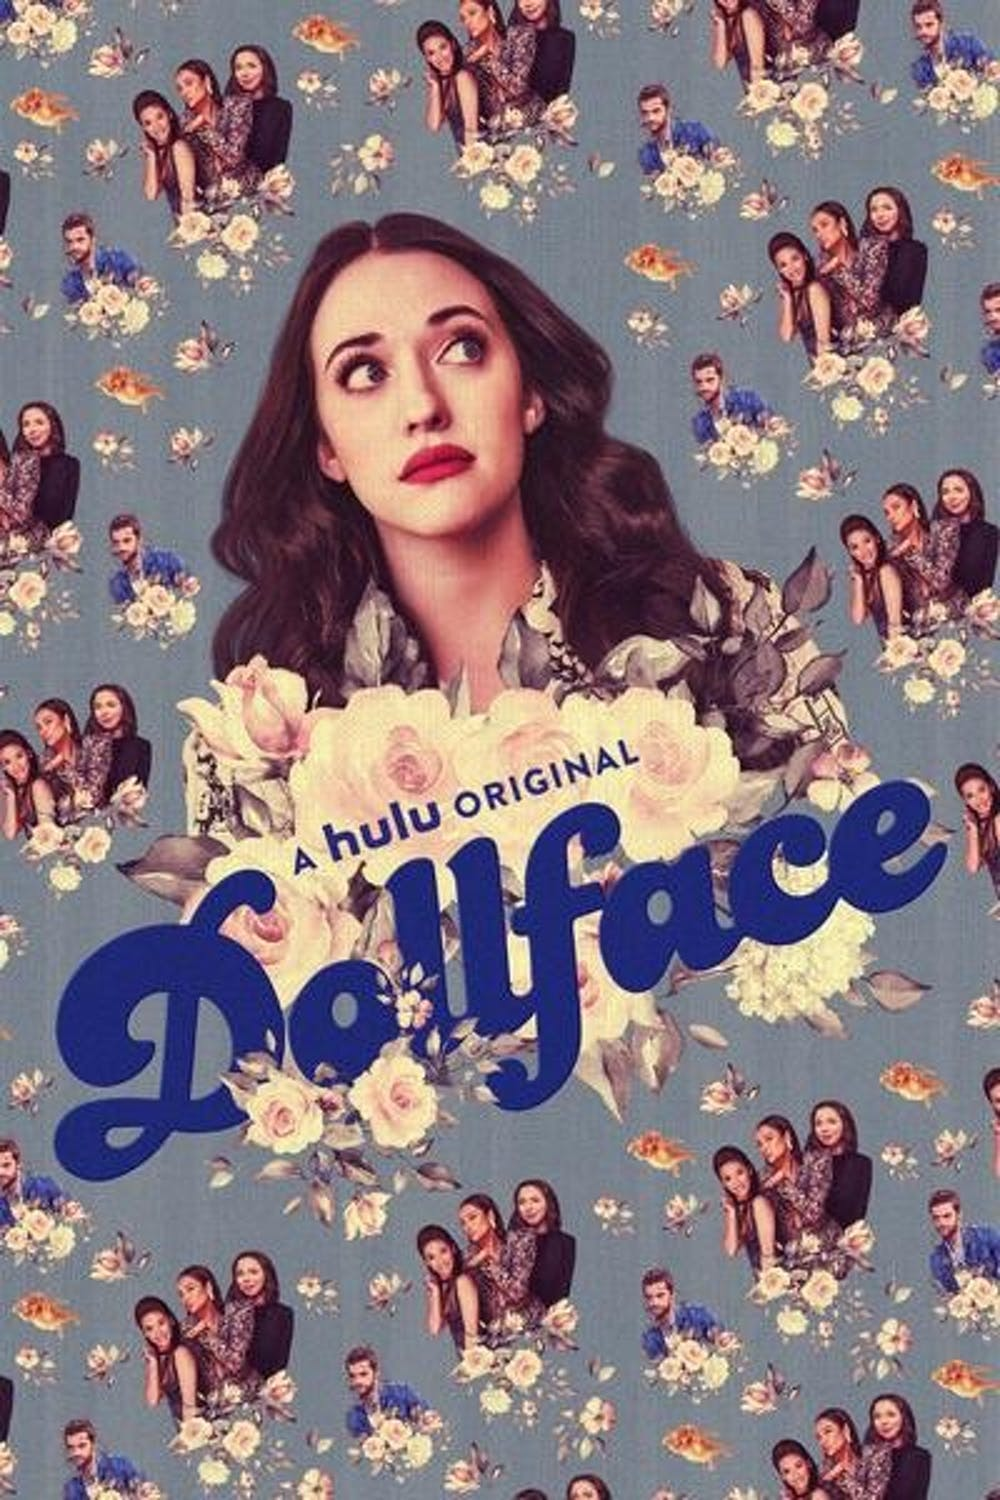 Review: 'Dollface' is a fresh and funny Hulu Original